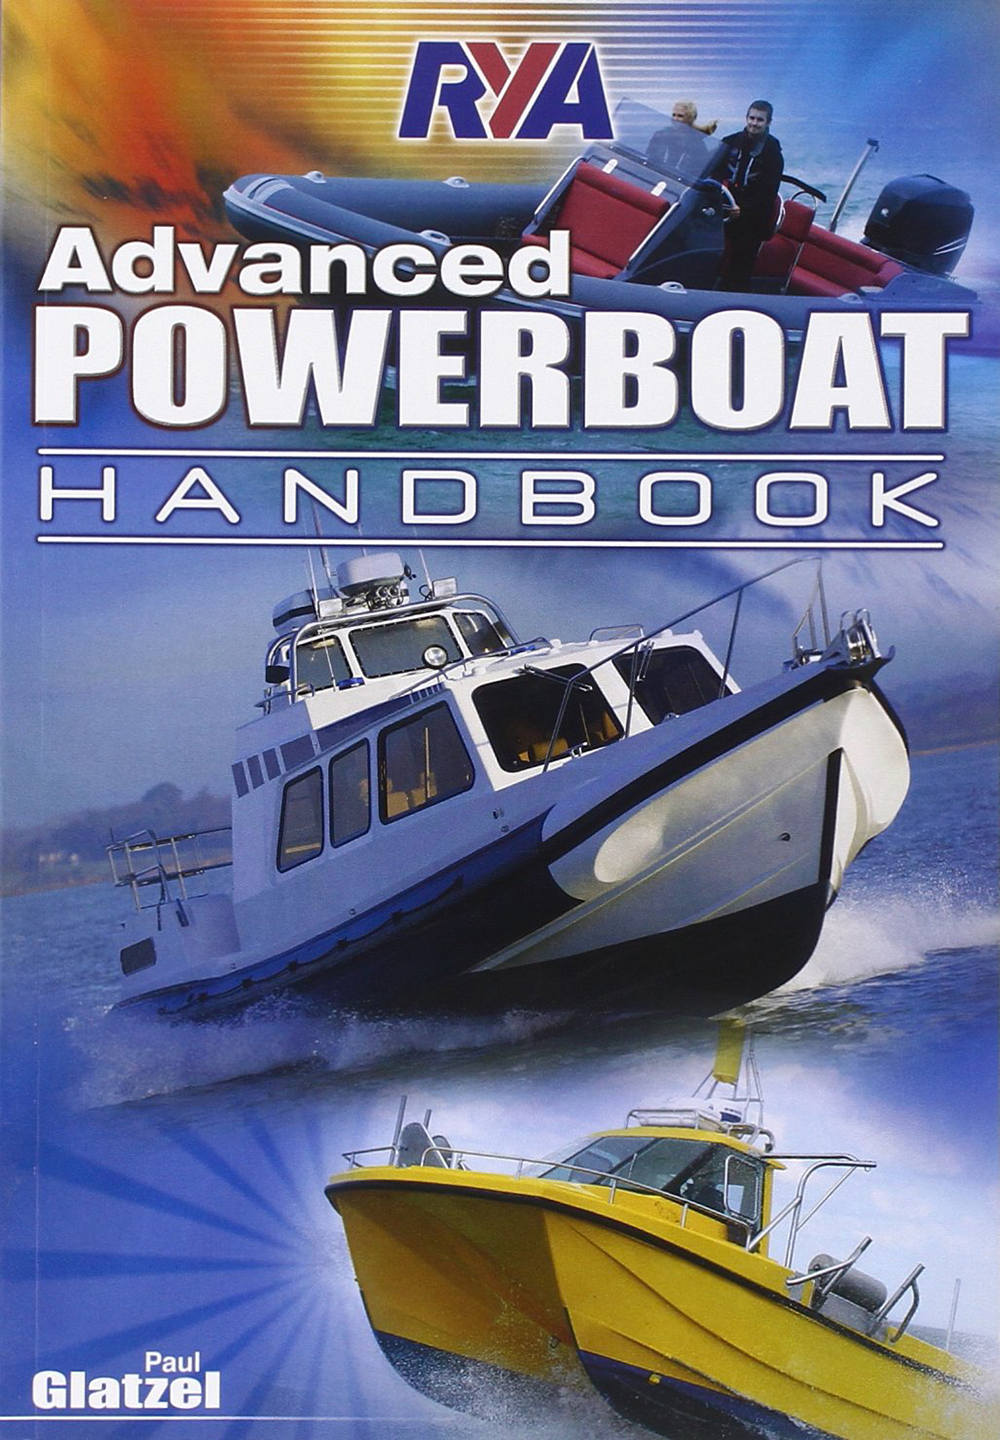 Advanced powerboat handbook